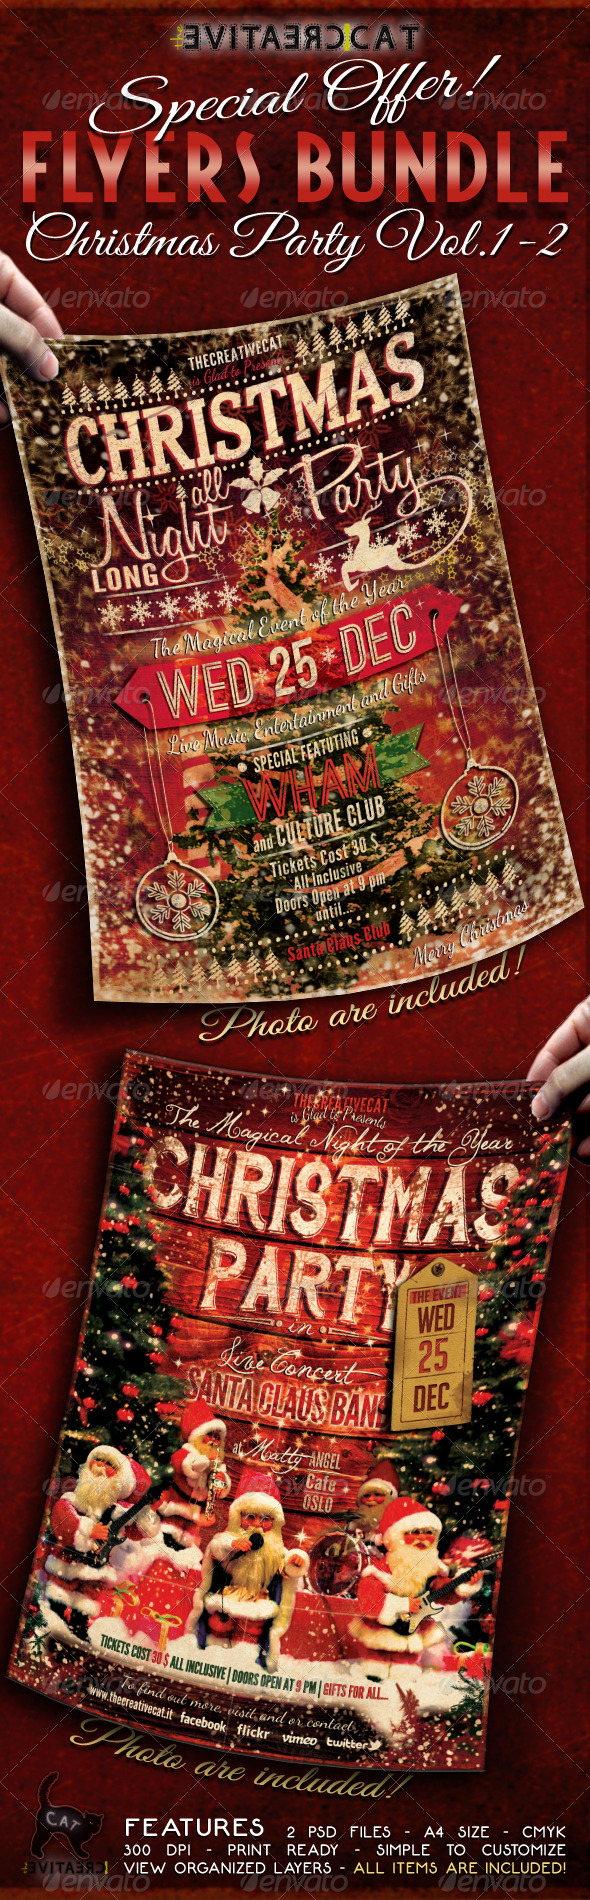 GraphicRiver Christmas Party Flyer Poster Bundle Vol 1-2 6337123